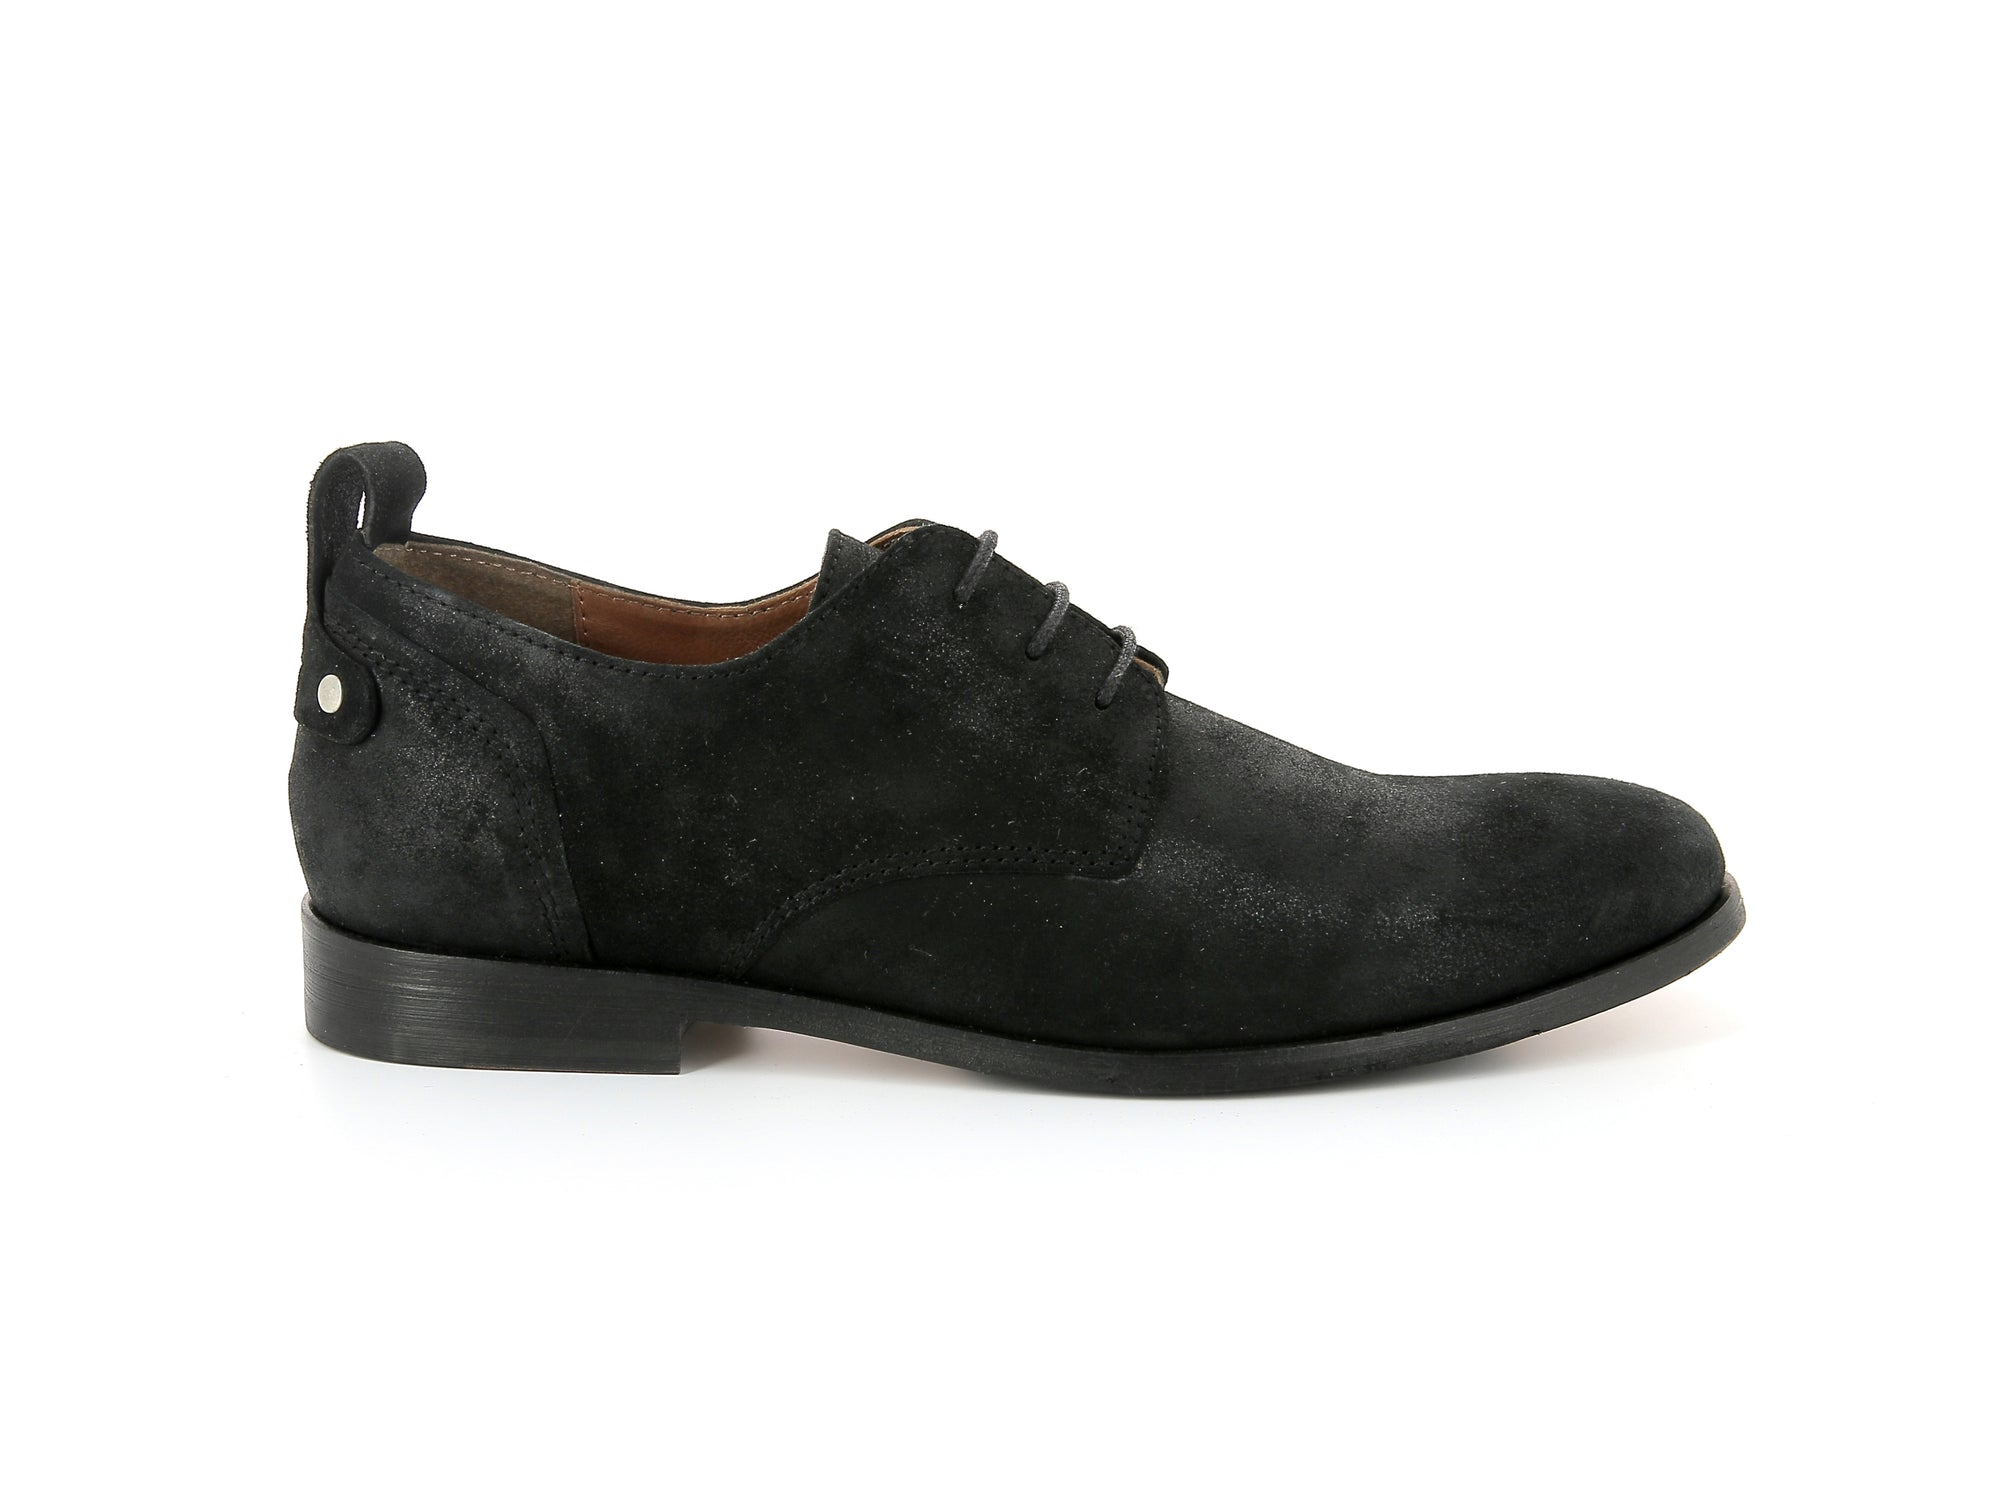 75754_315 | Derbies femme PICADILLY SPH | BLACK